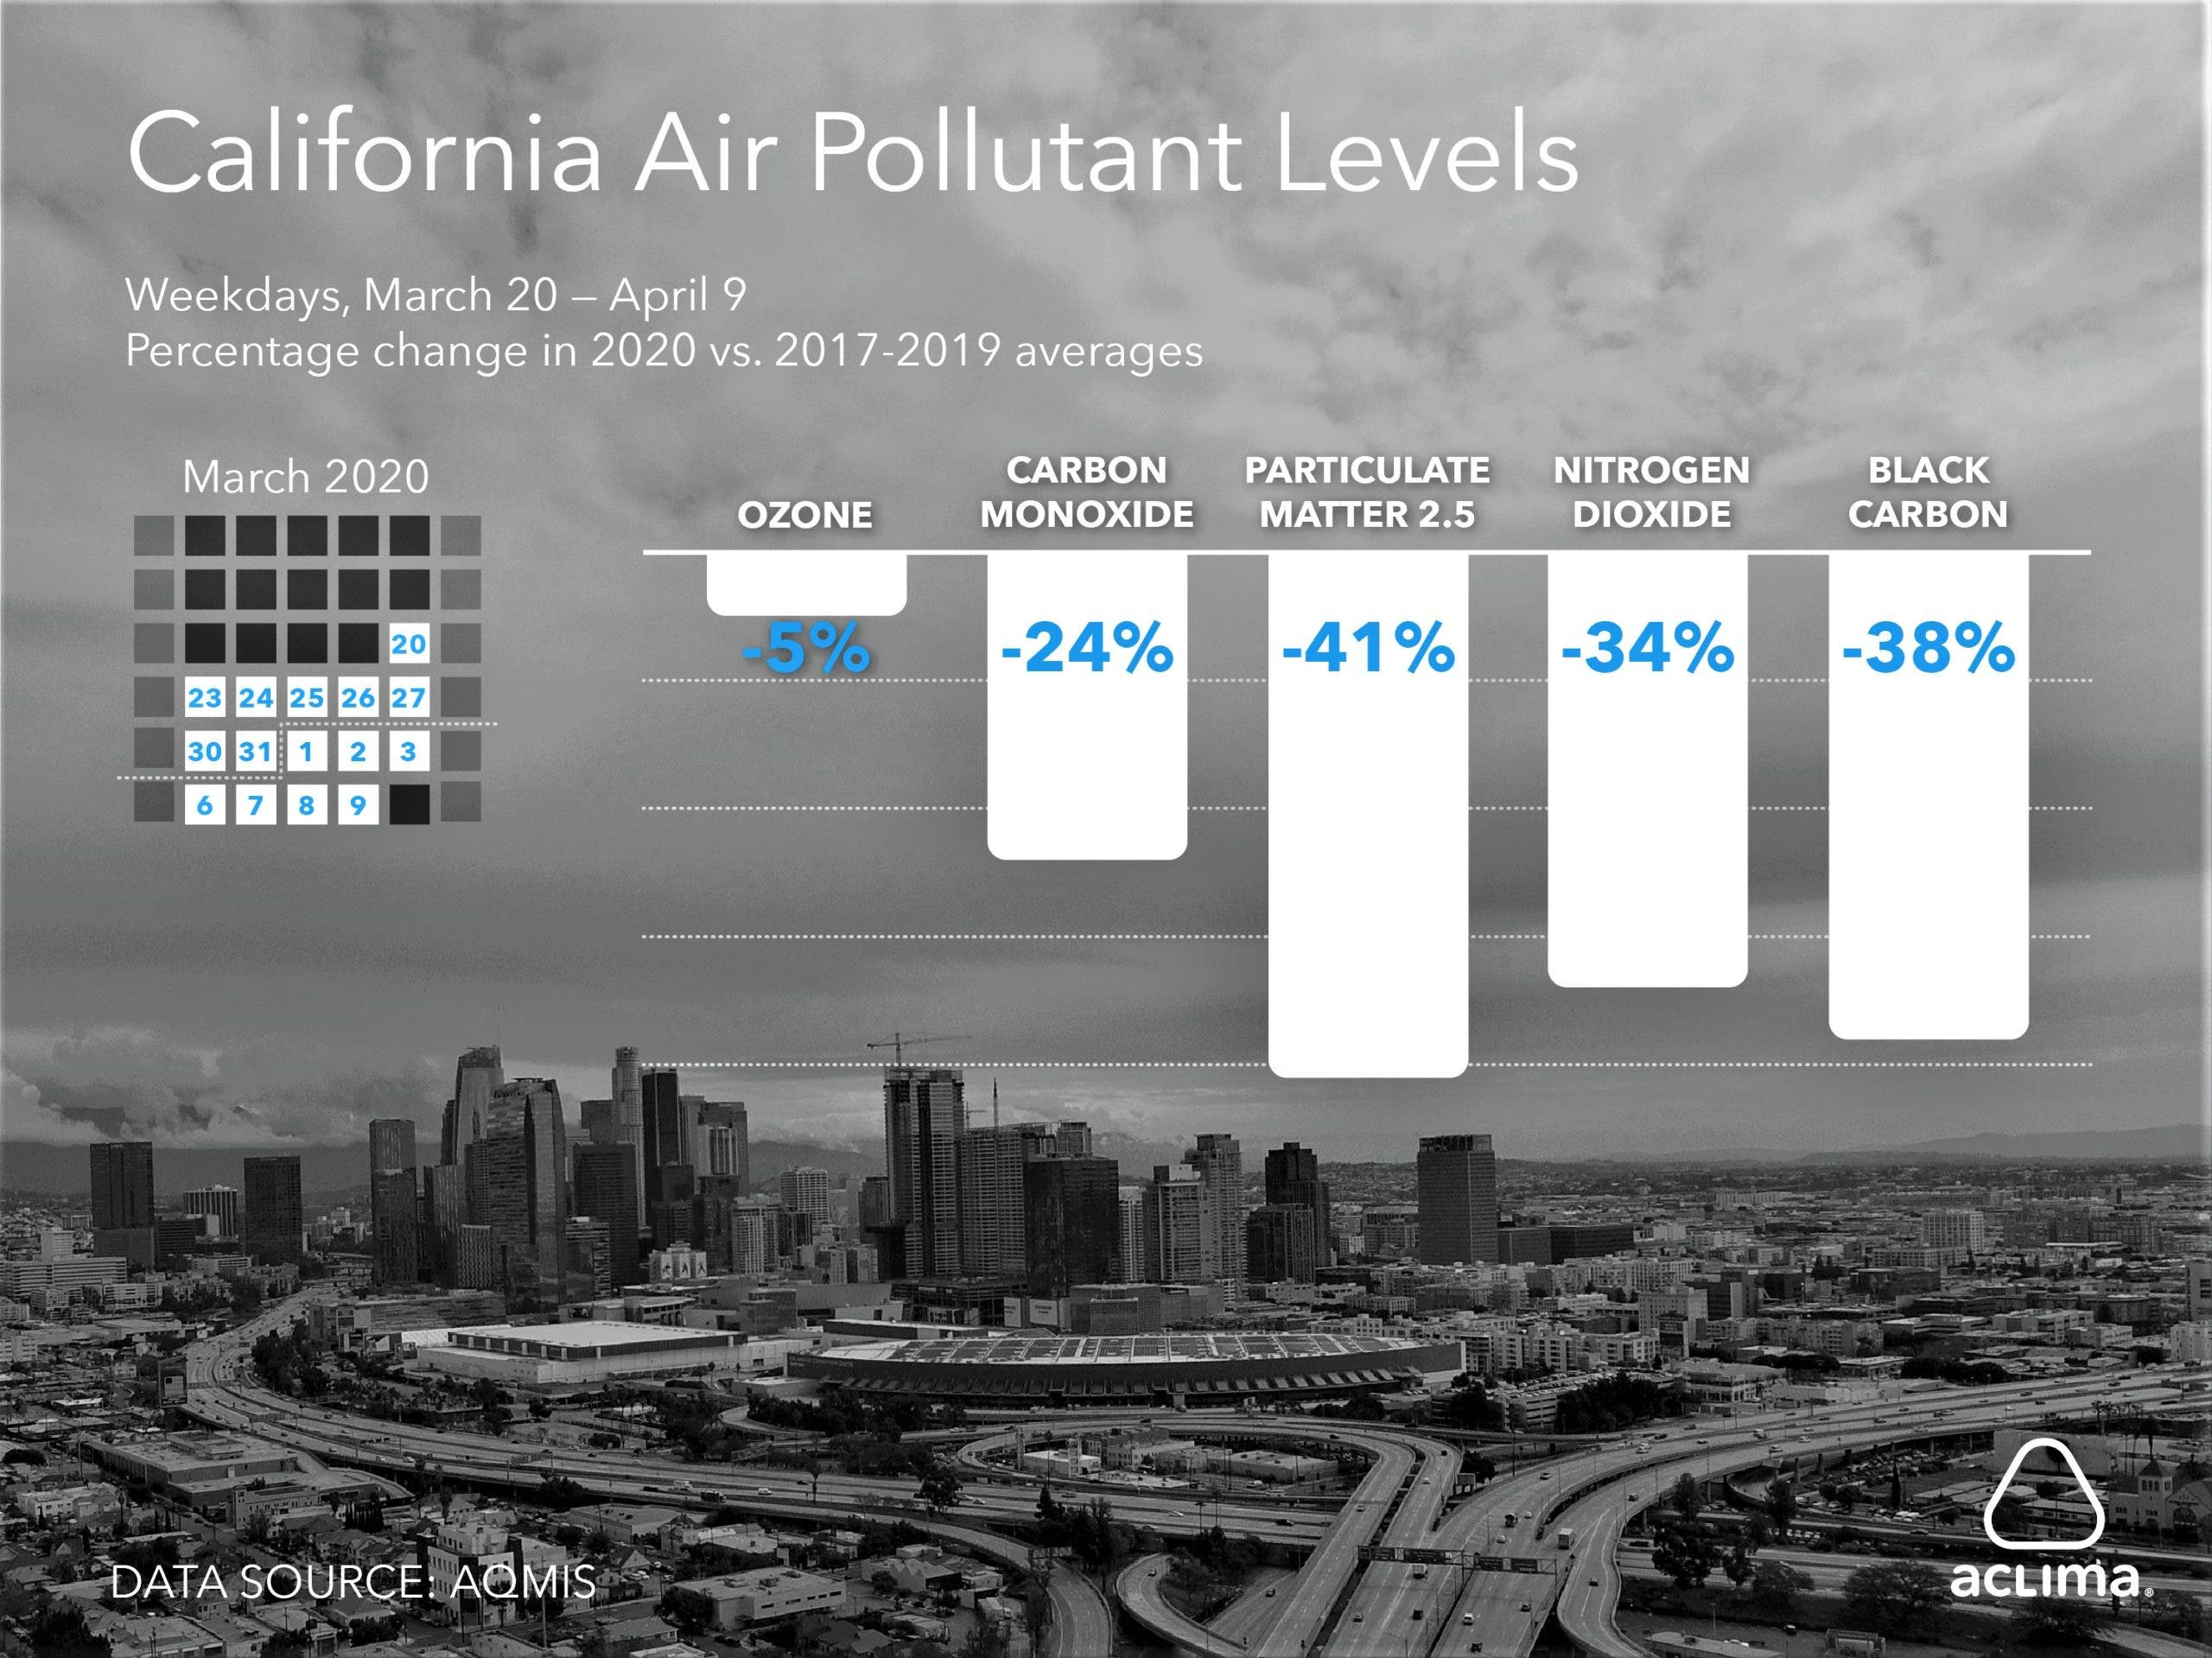 Air pollutant levels drop across California during shelter-in-place compared to prior years.